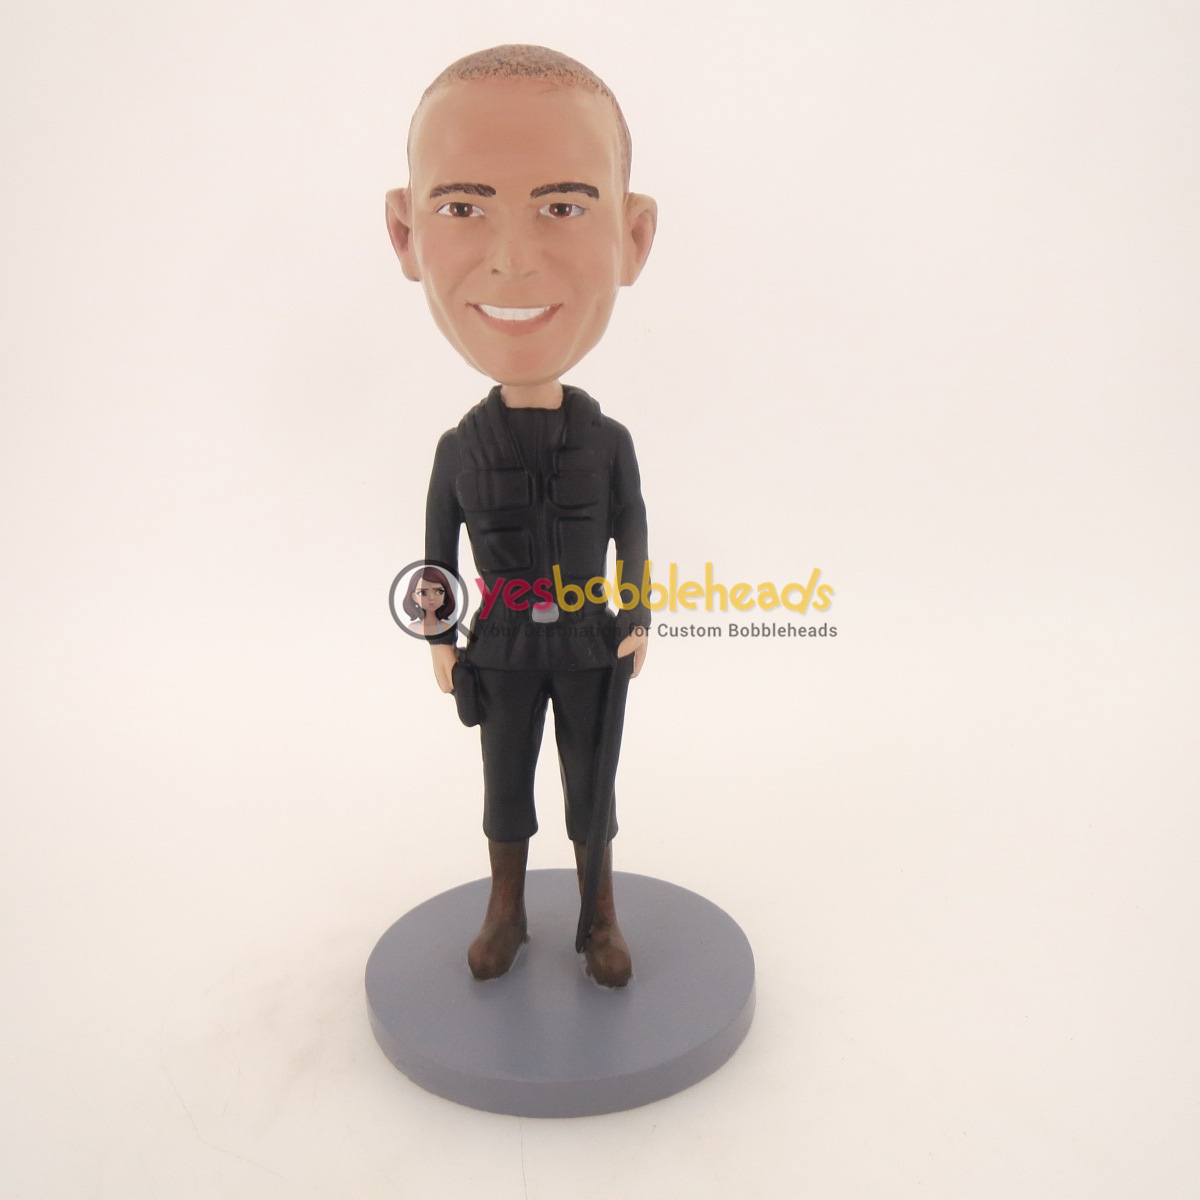 Picture of Custom Bobblehead Doll: Military Armed Man In Black